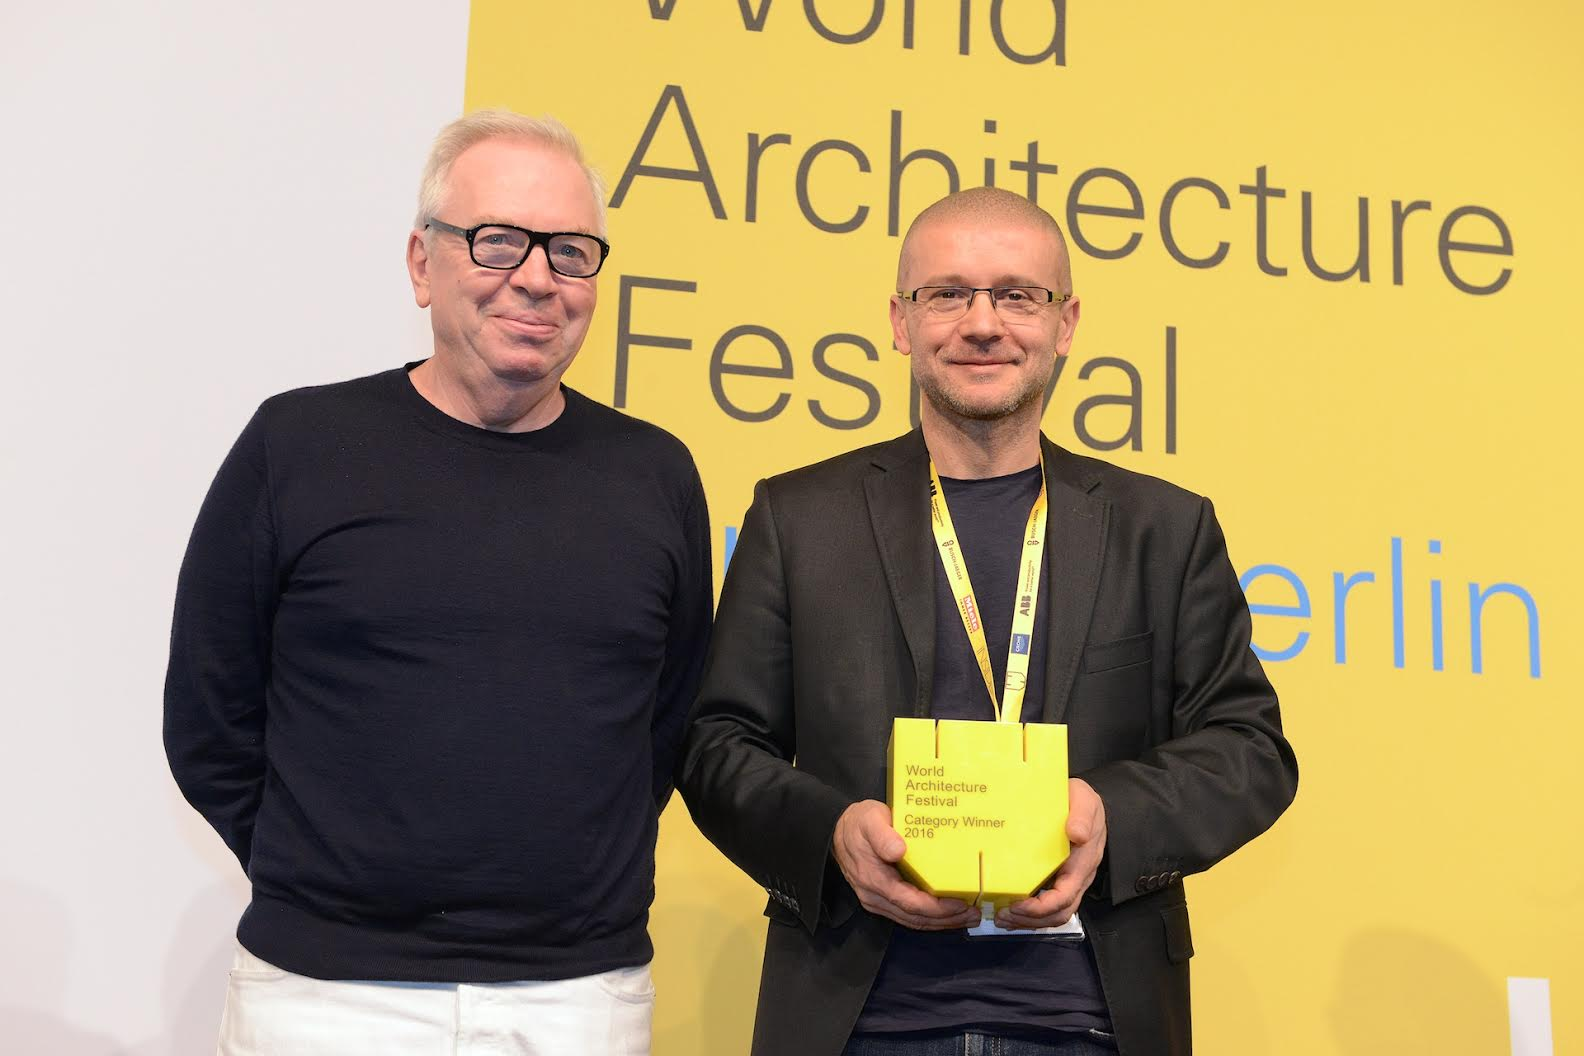 David Chipperfield, Robert Konieczny